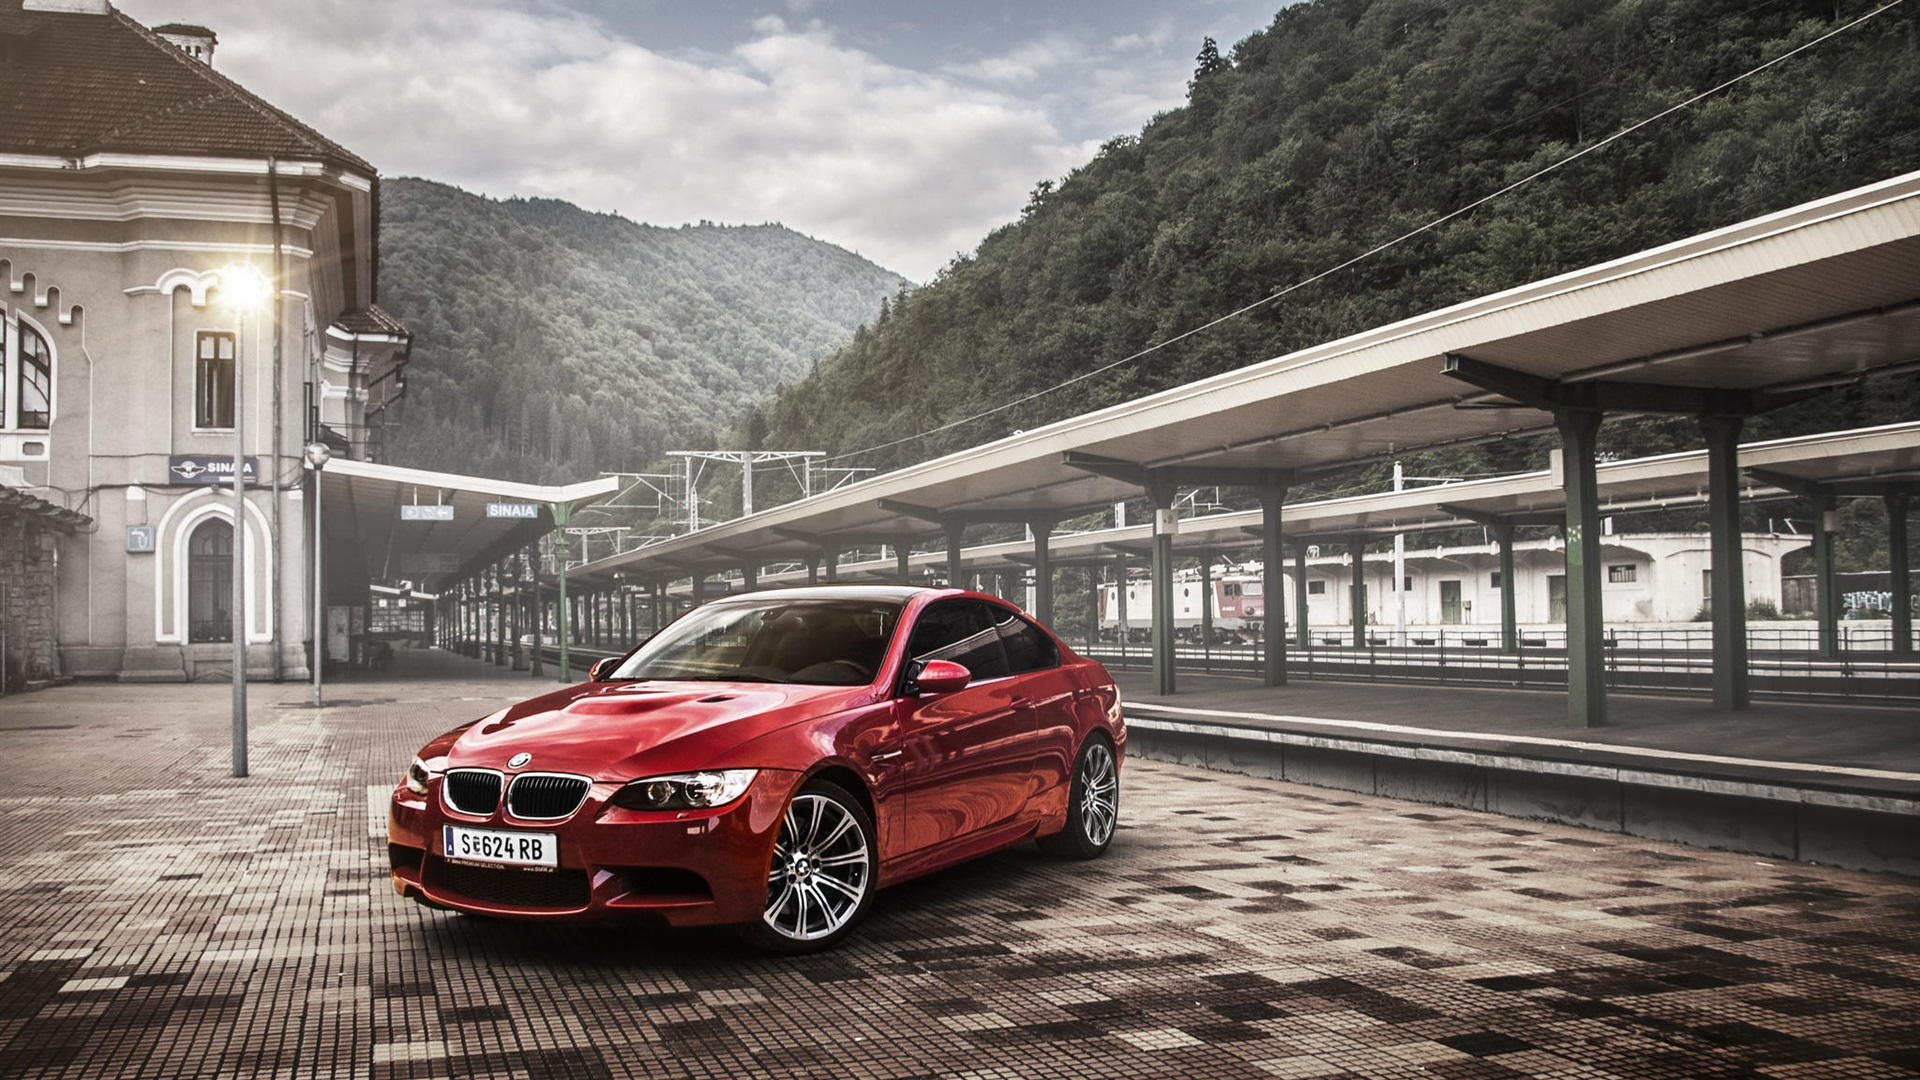 Wallpaper Bmw M3 E92 Coupe Red Car Rail Station 1920x1080 Full Hd 2k Picture Image